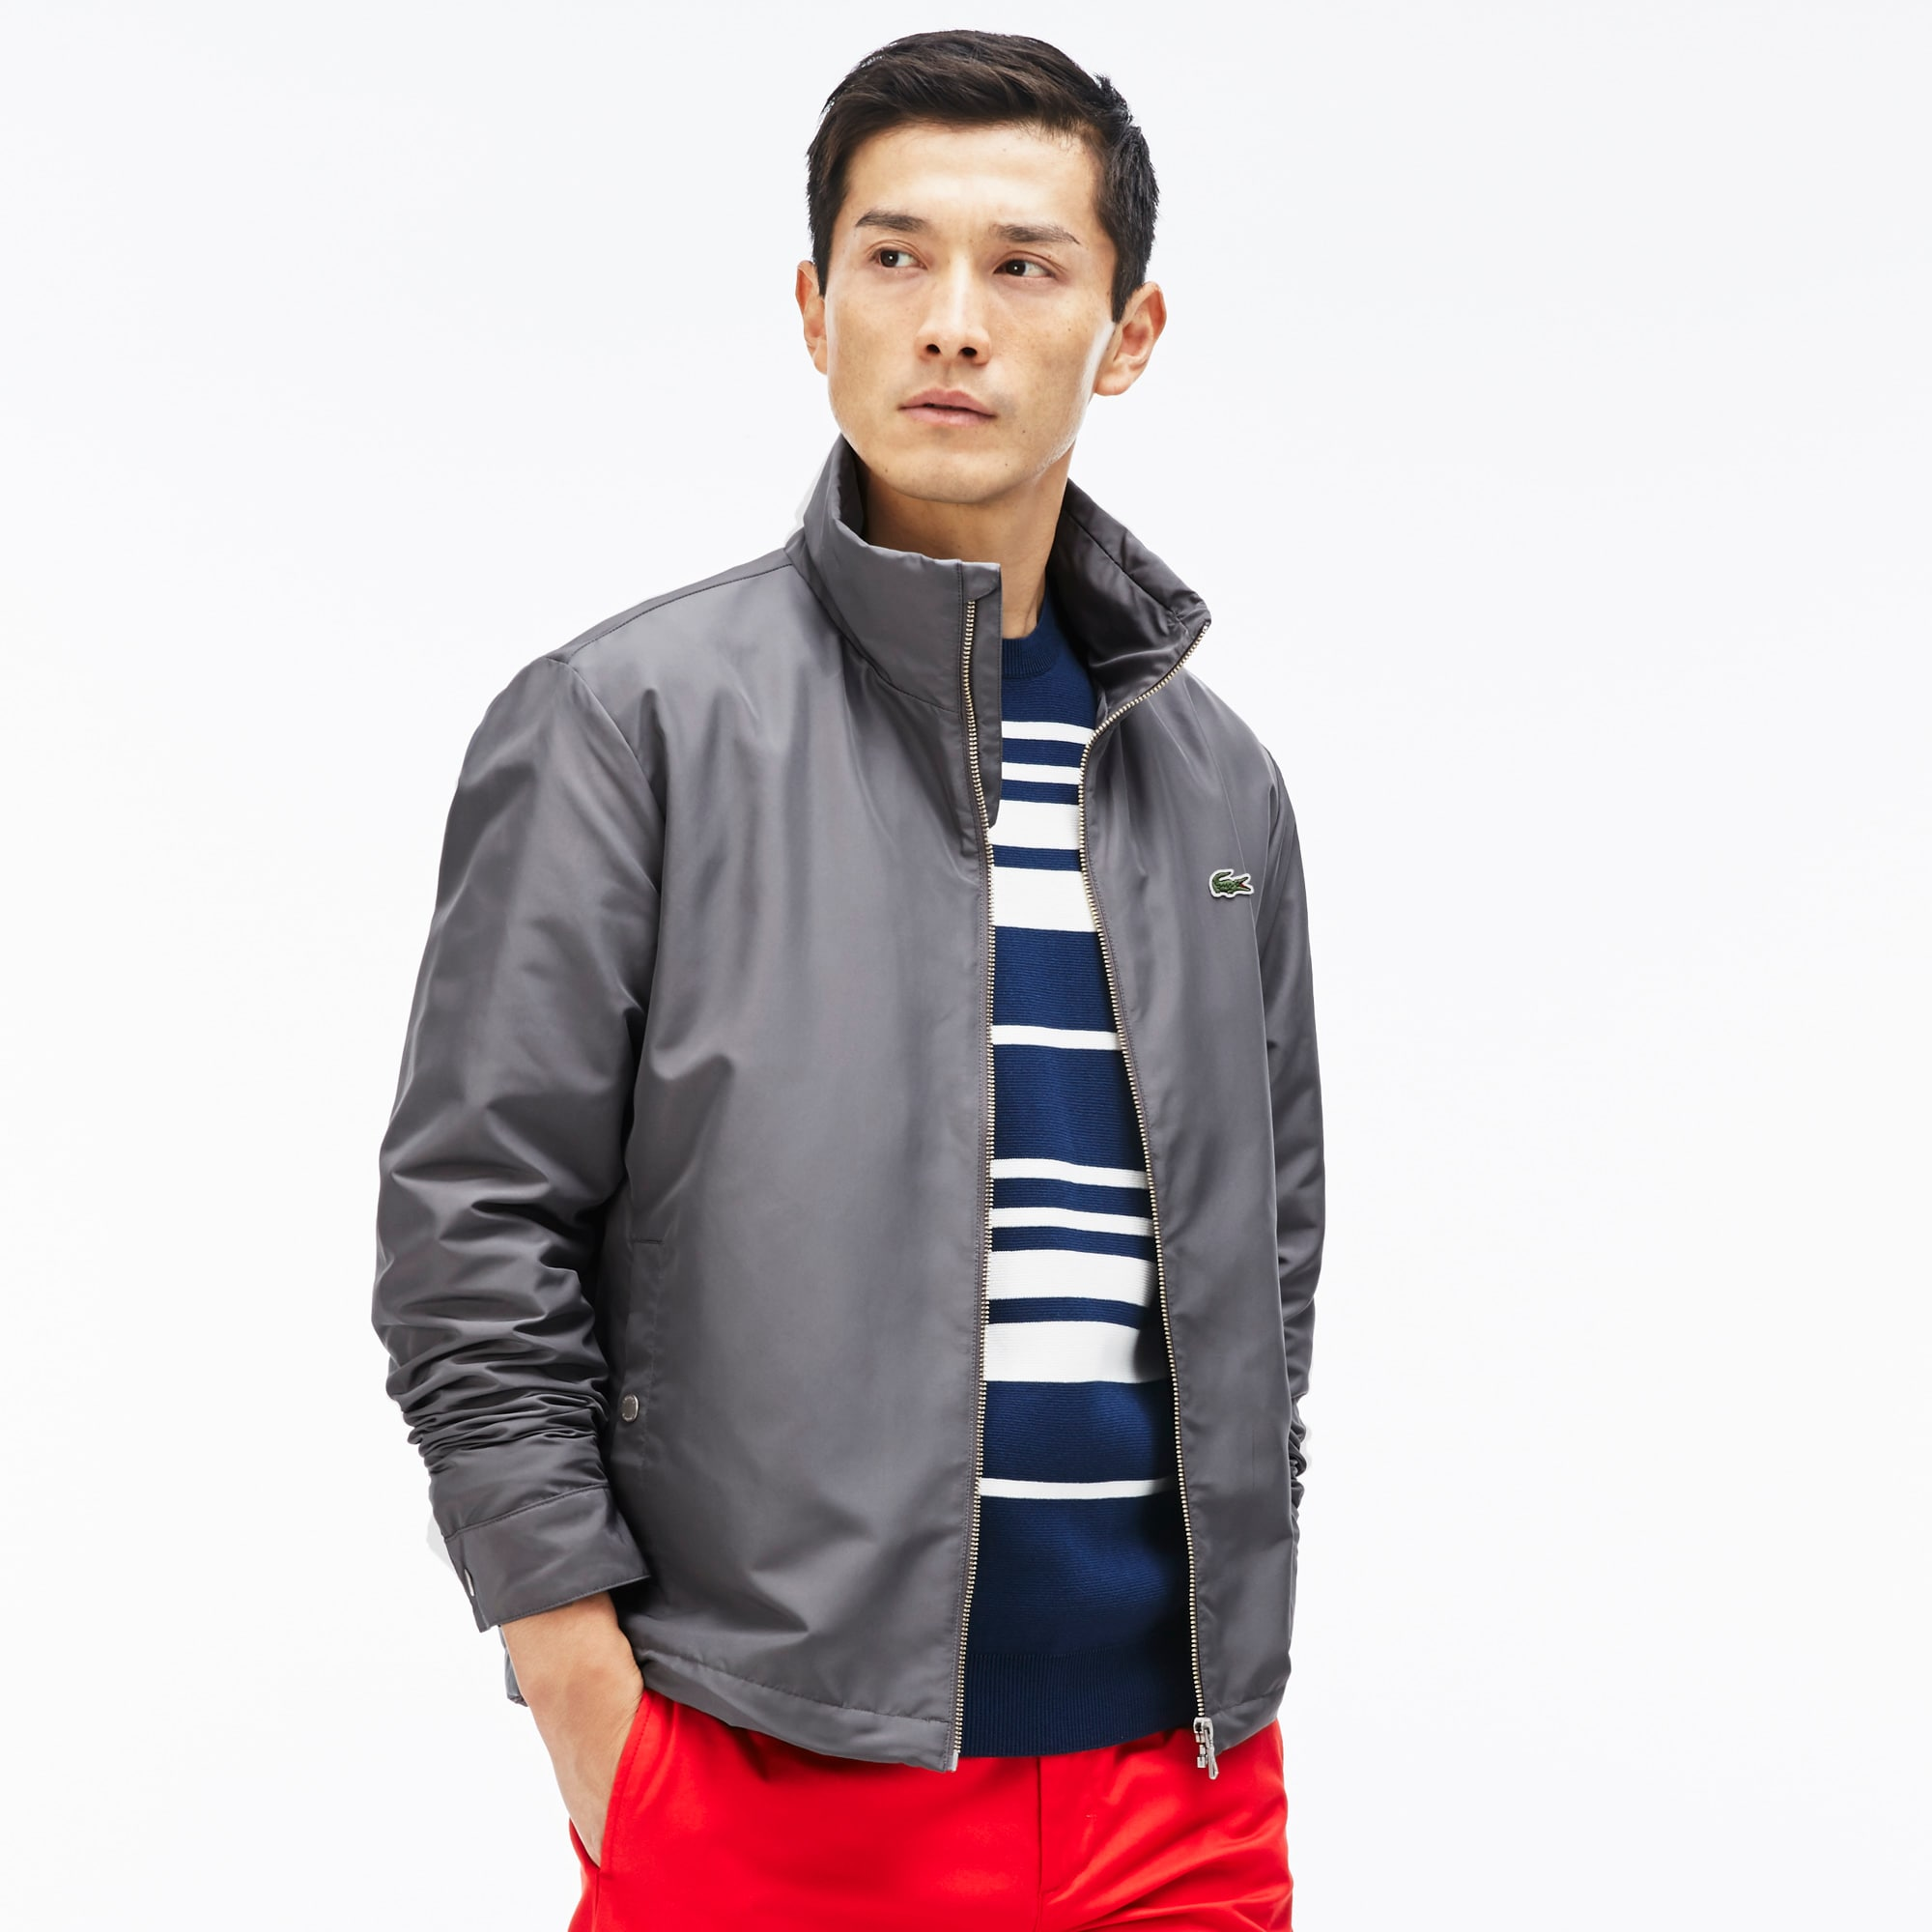 Men's Unicolor Nylon Contrasting Accents Hooded Zippered Jacket